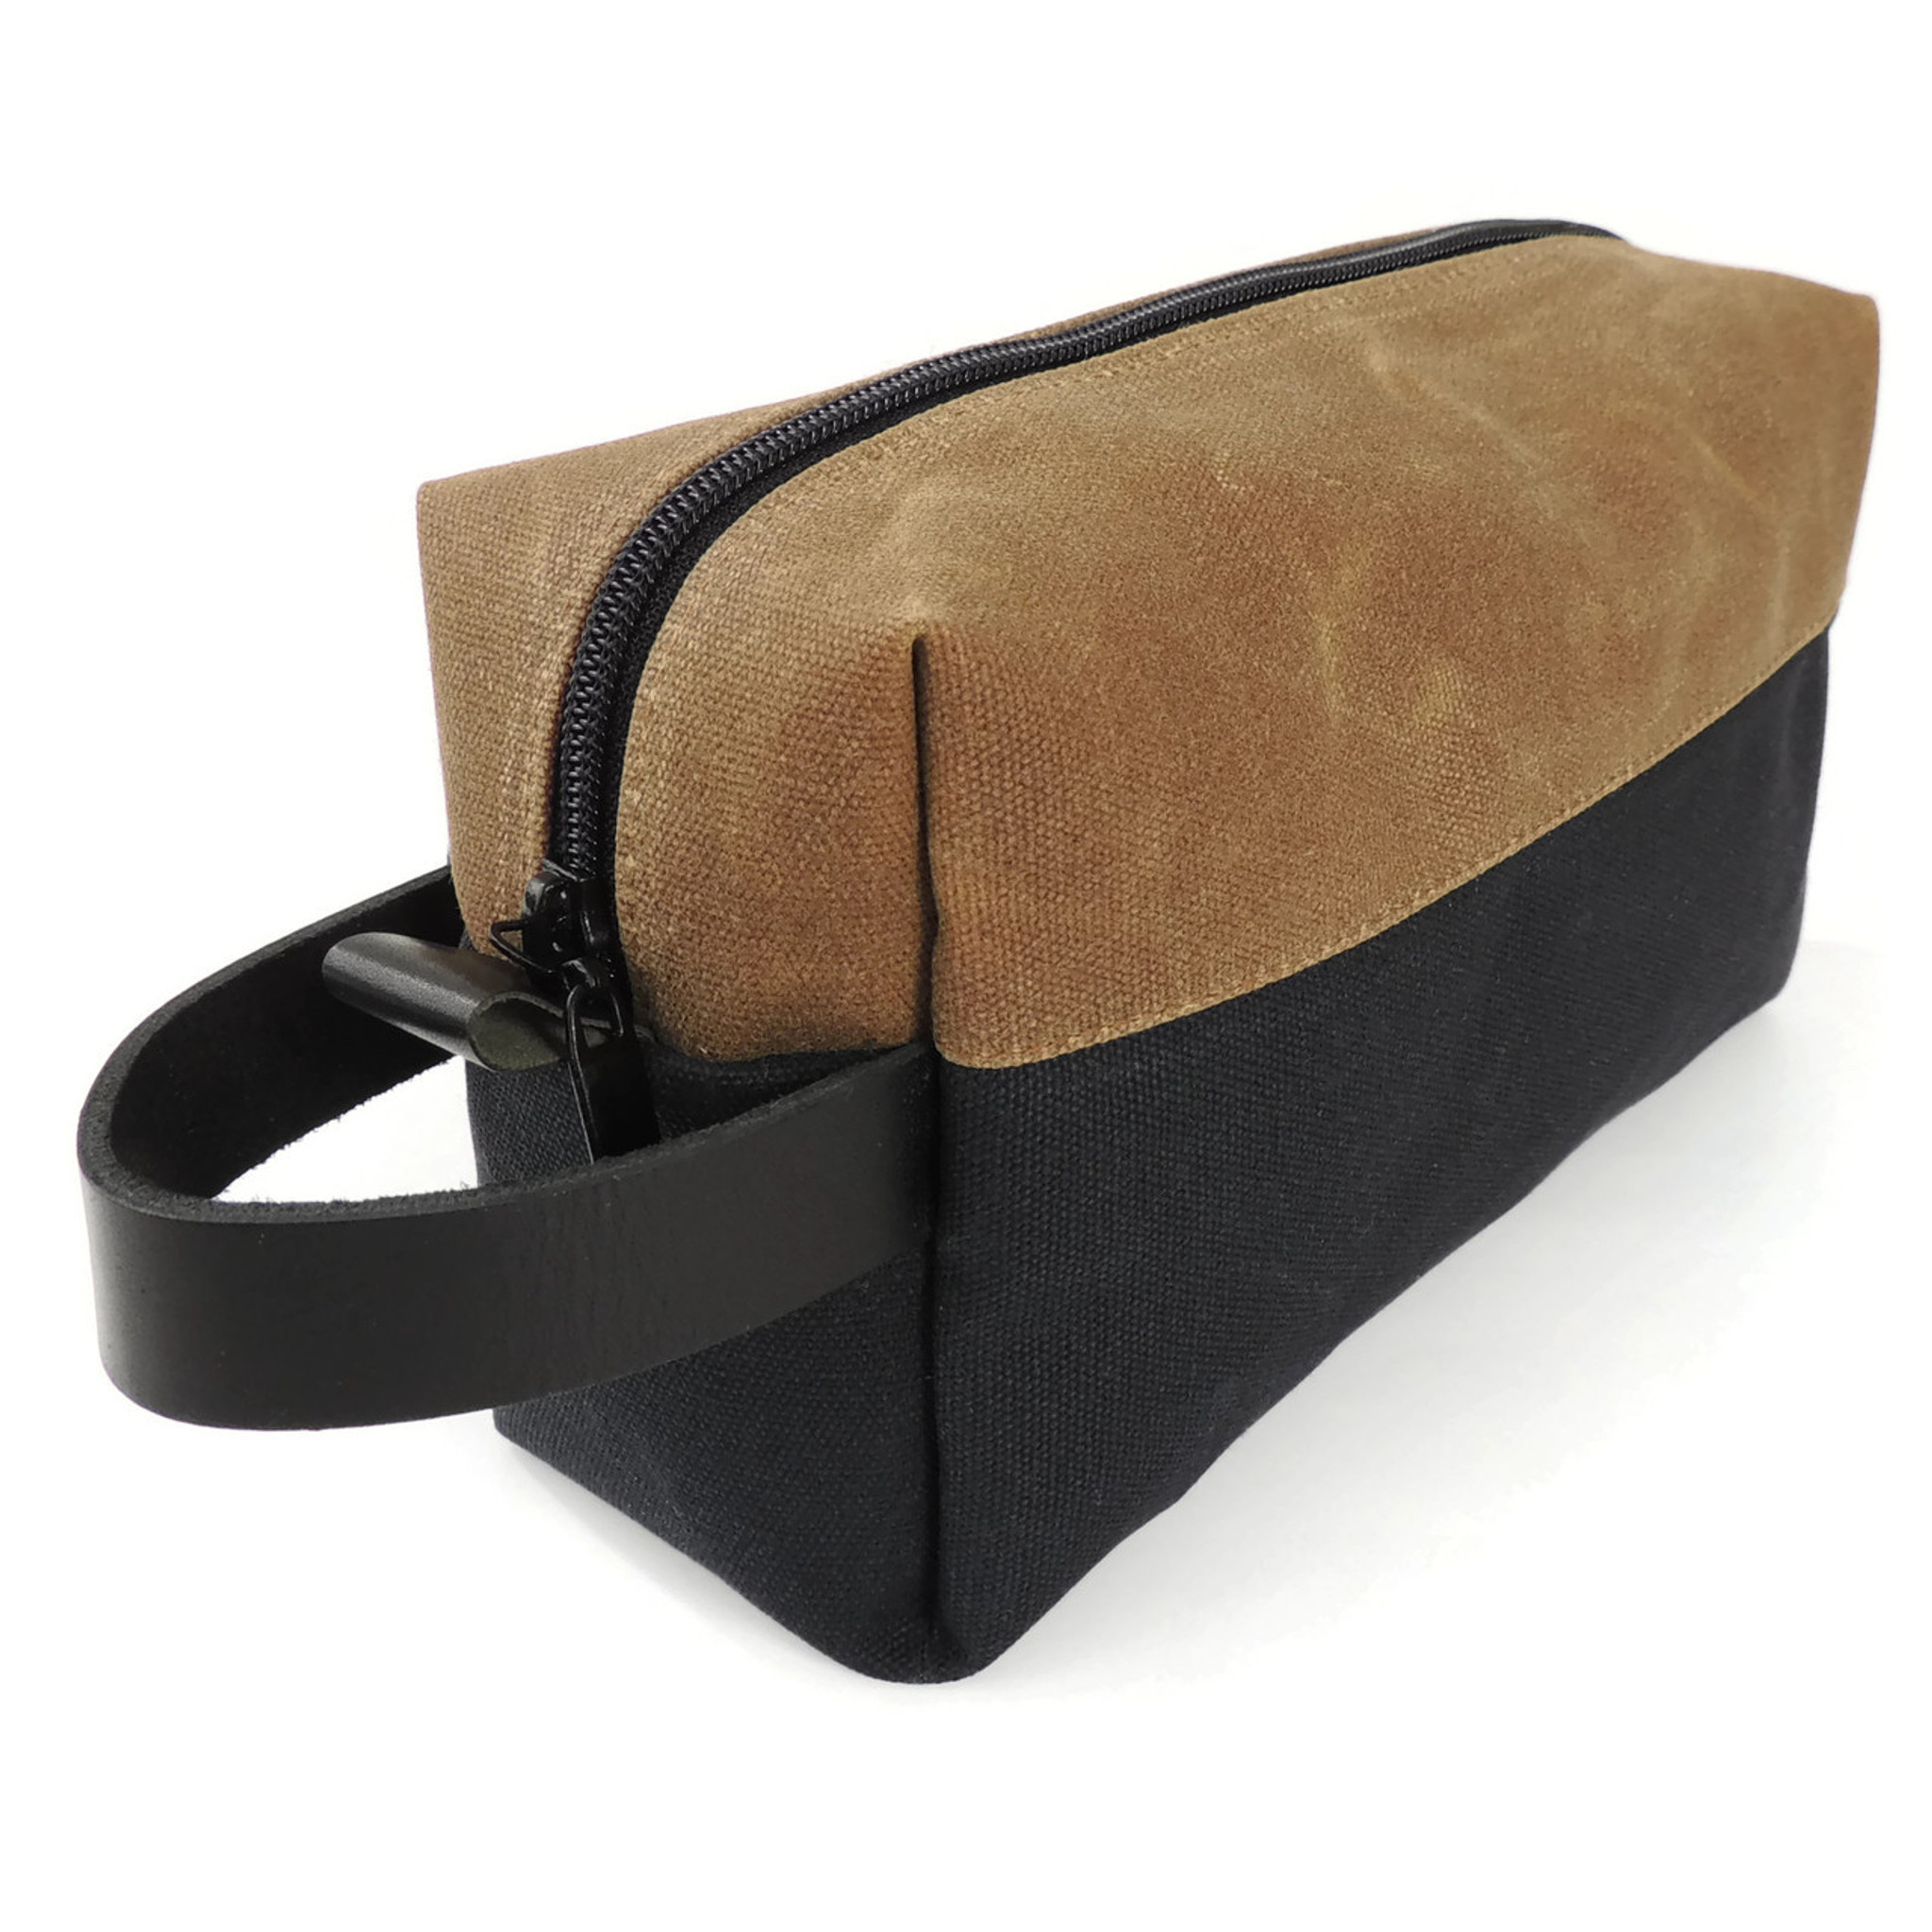 Dopp Kit in Black and Brown Waxed Canva